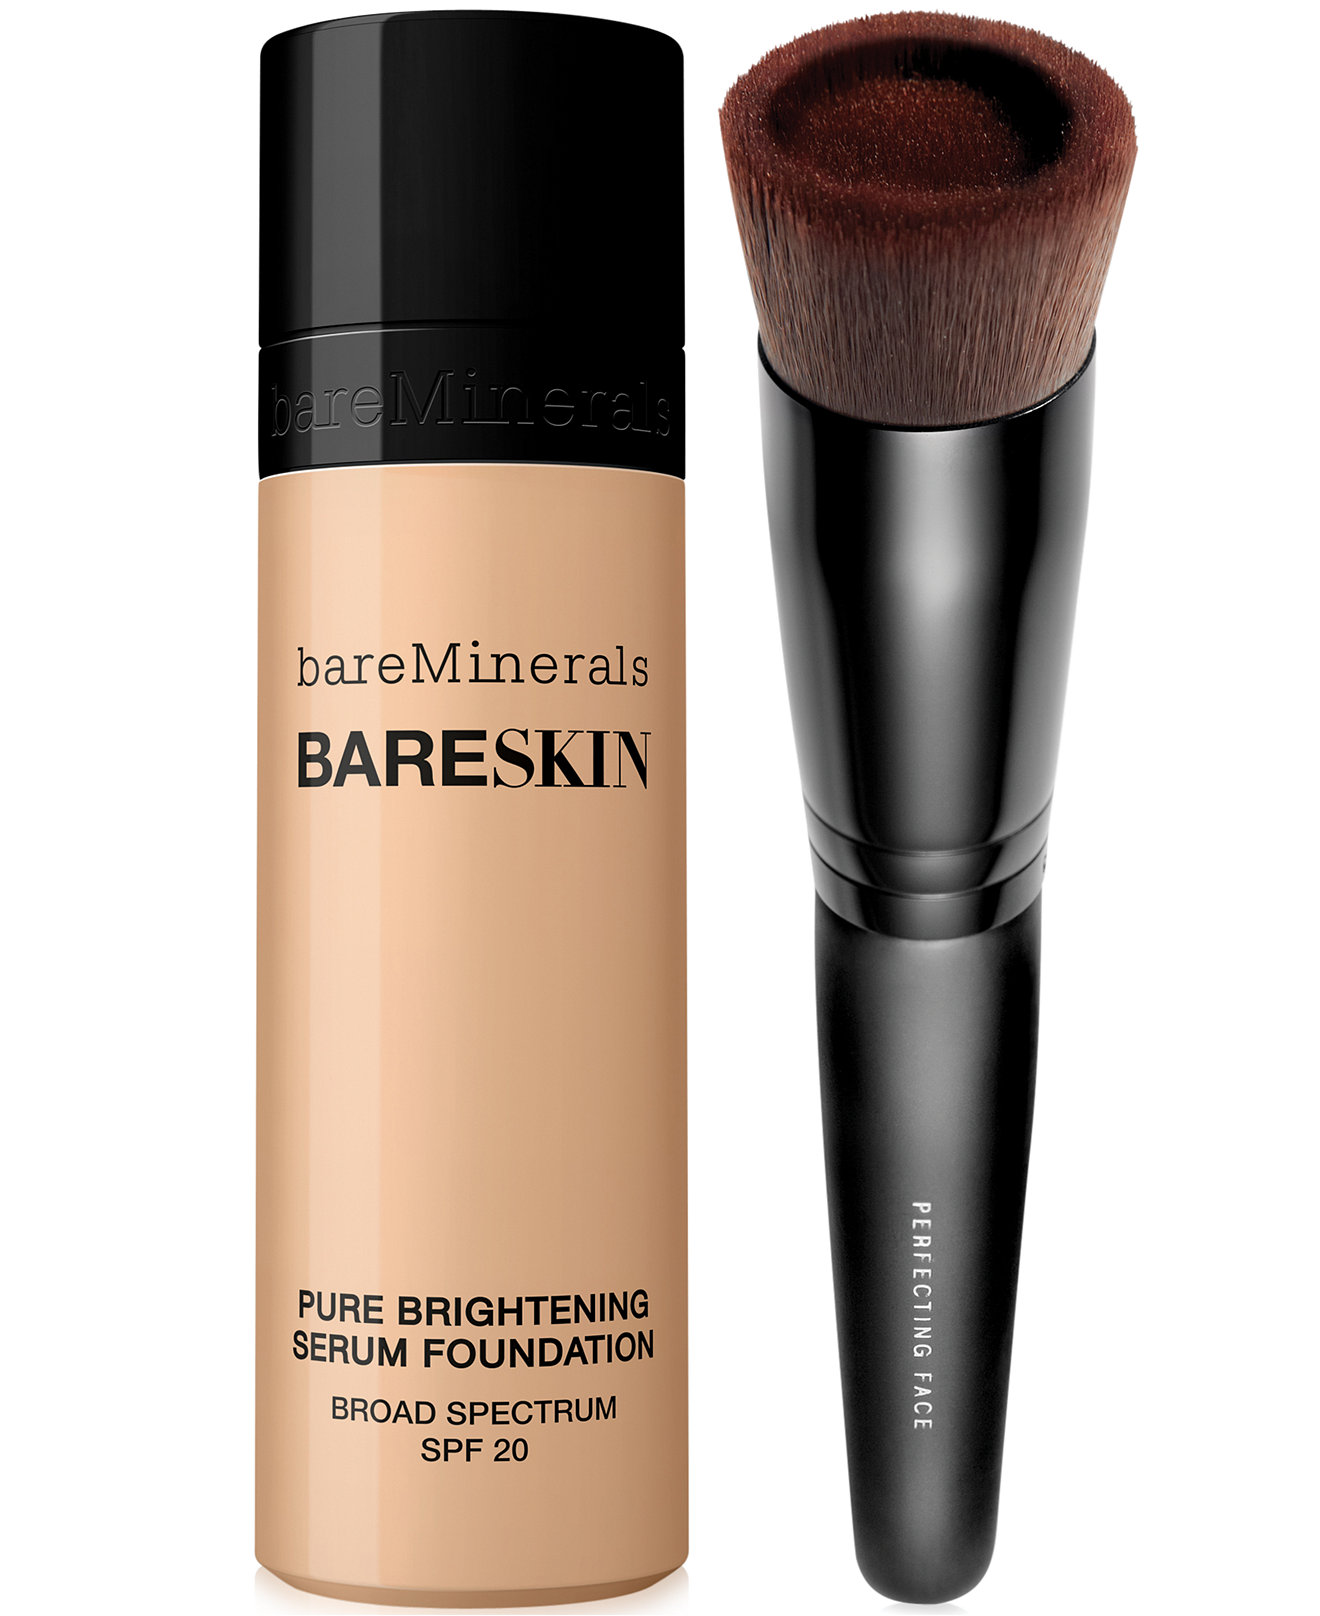 Search for bare minerals xl Preisvergleich, Testbericht und Kaufberatung95% customer satisfaction · Enjoy big savings · Huge SelectionGoods: Perfumes and Fragrances, Skin Care and Hair Care, Shaving and Hair Removal.